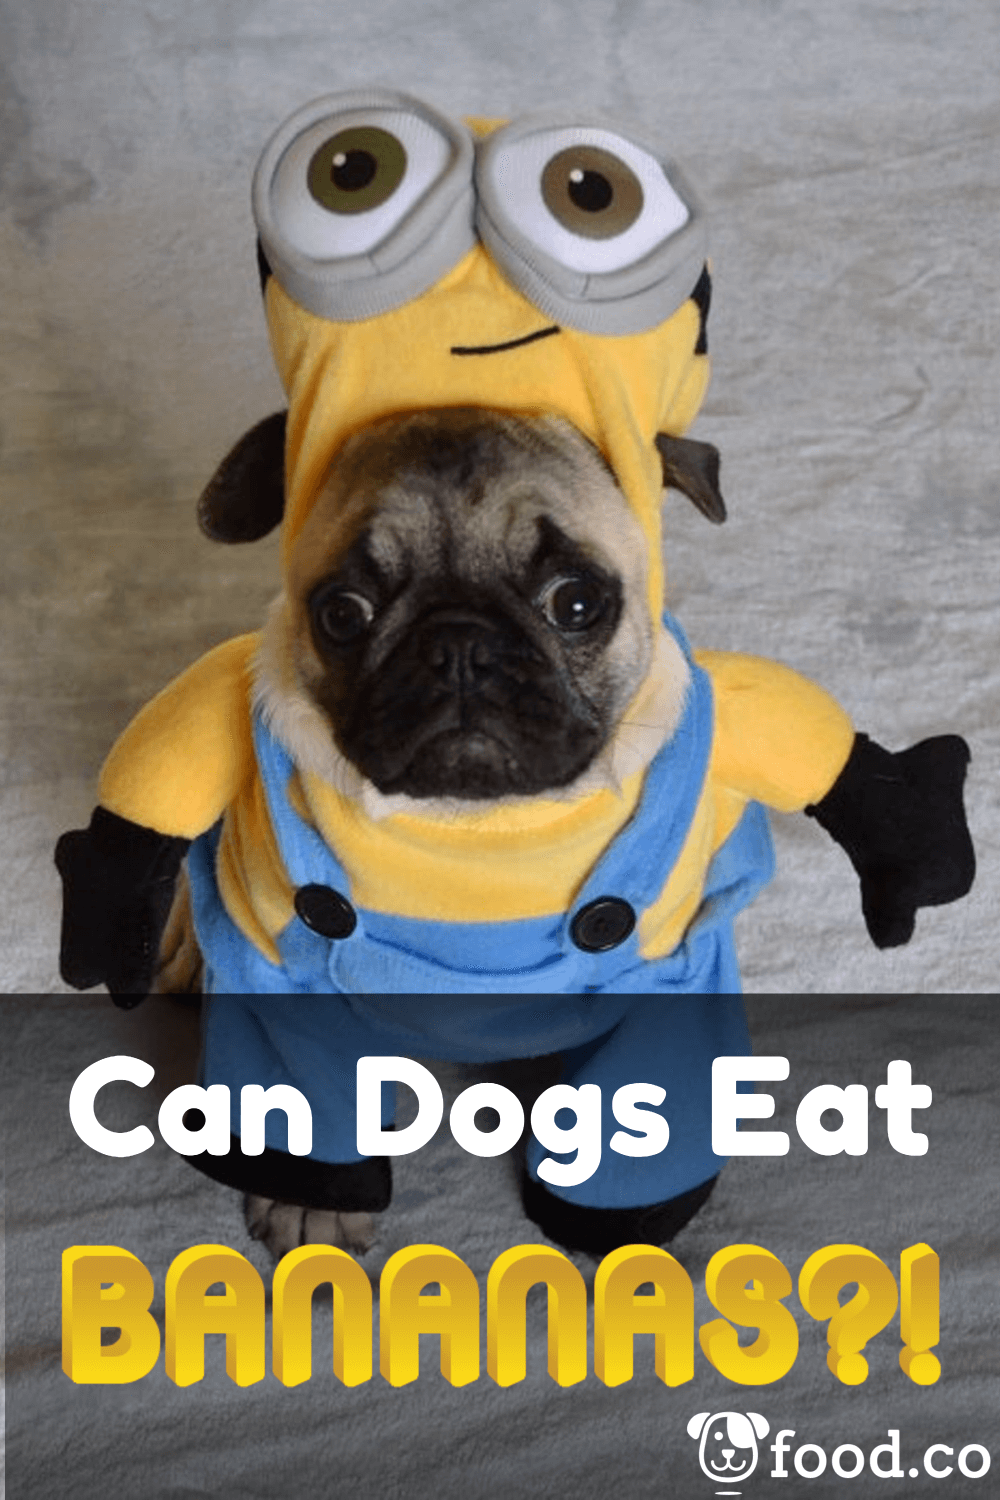 Can Dogs Eat Grapes Apples Bananas Hint 1 Is Deadly Dogfood